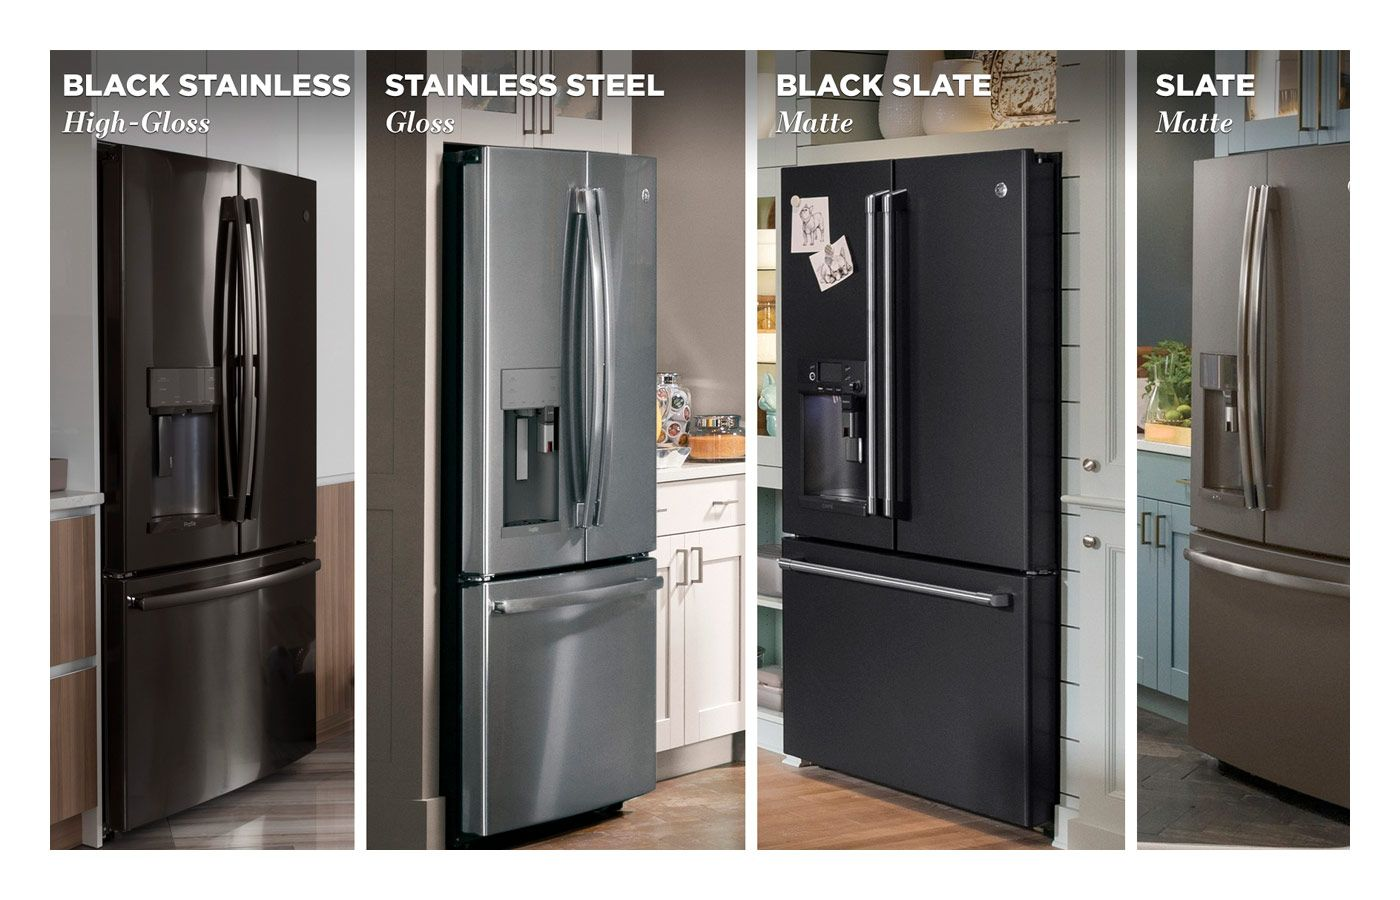 Premium Appliance Finishes In Stainless Steel Black Stainless Slate And Black Slate Slate Appliances Kitchen Slate Appliances Black Stainless Steel Kitchen